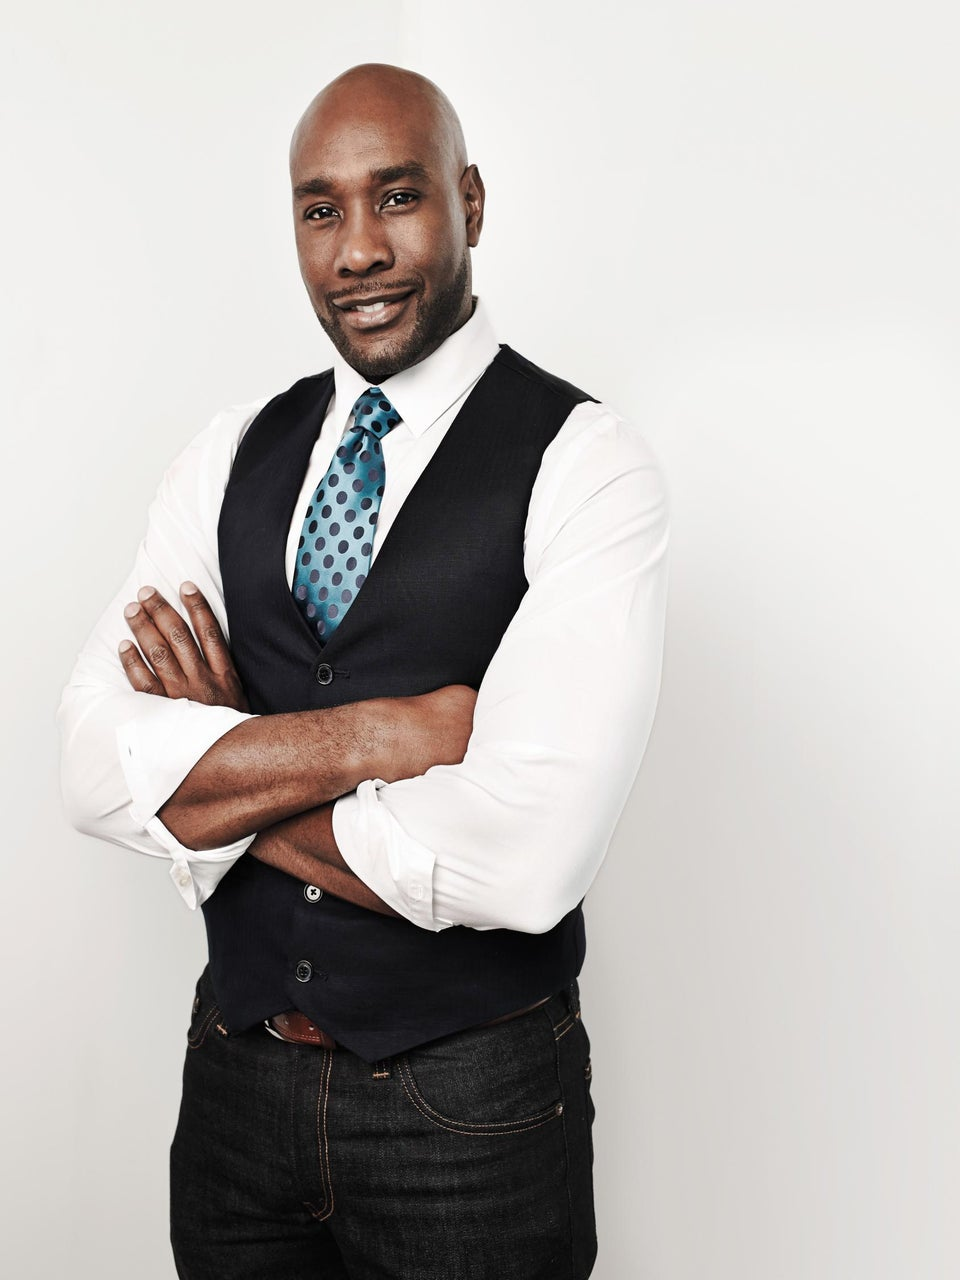 Morris Chestnut Reveals the Secret Behind His Hollywood Staying Power